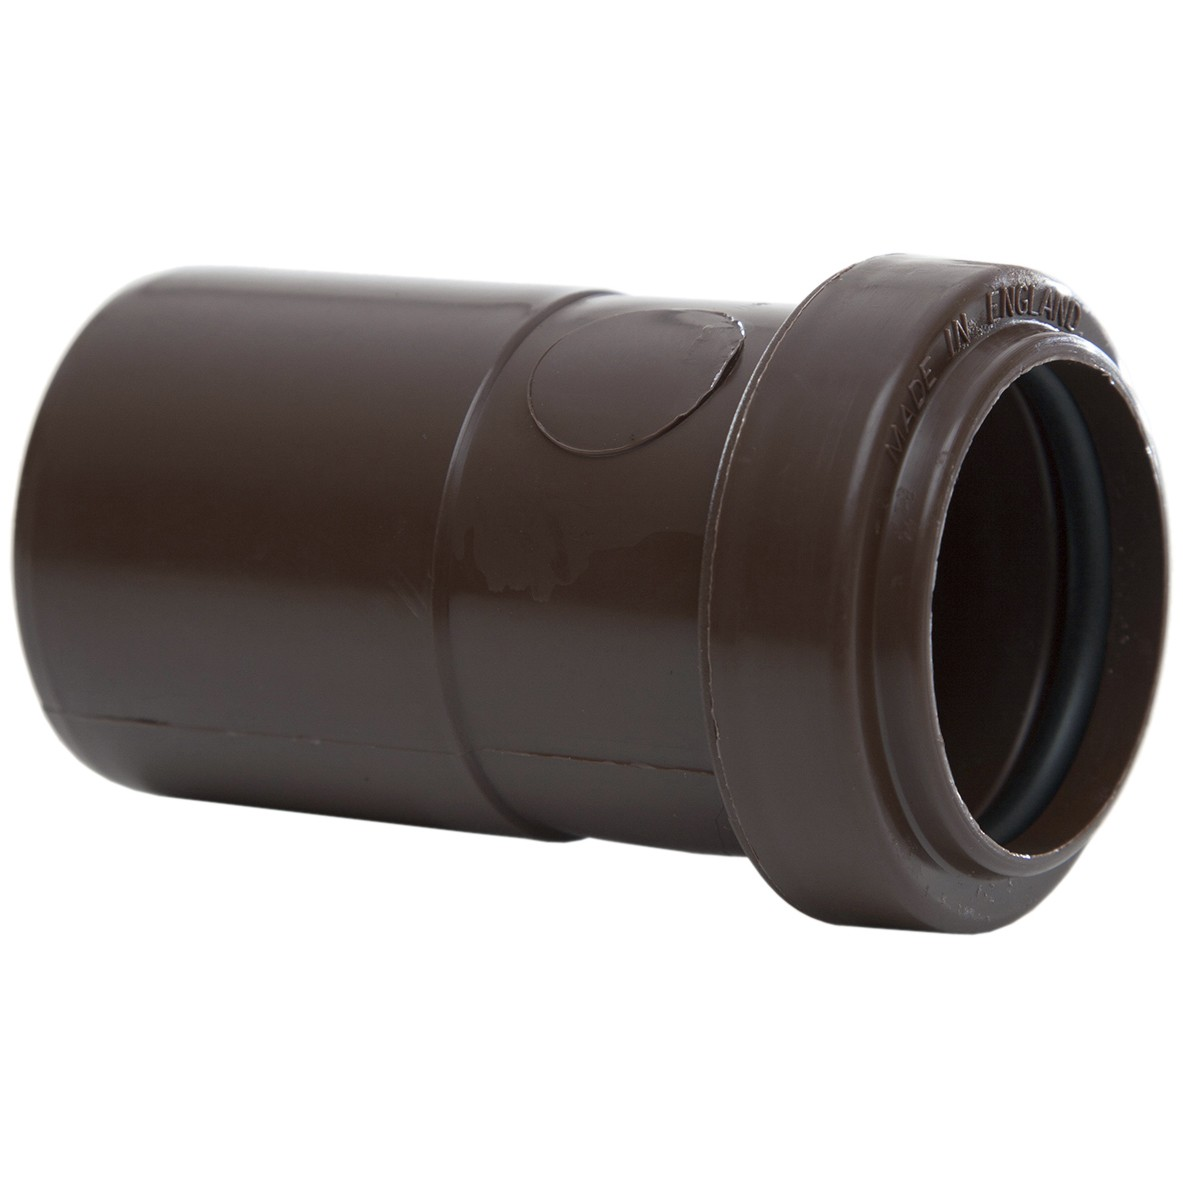 Polypipe 40mm to 32mm Push Fit Waste Reducer - Brown